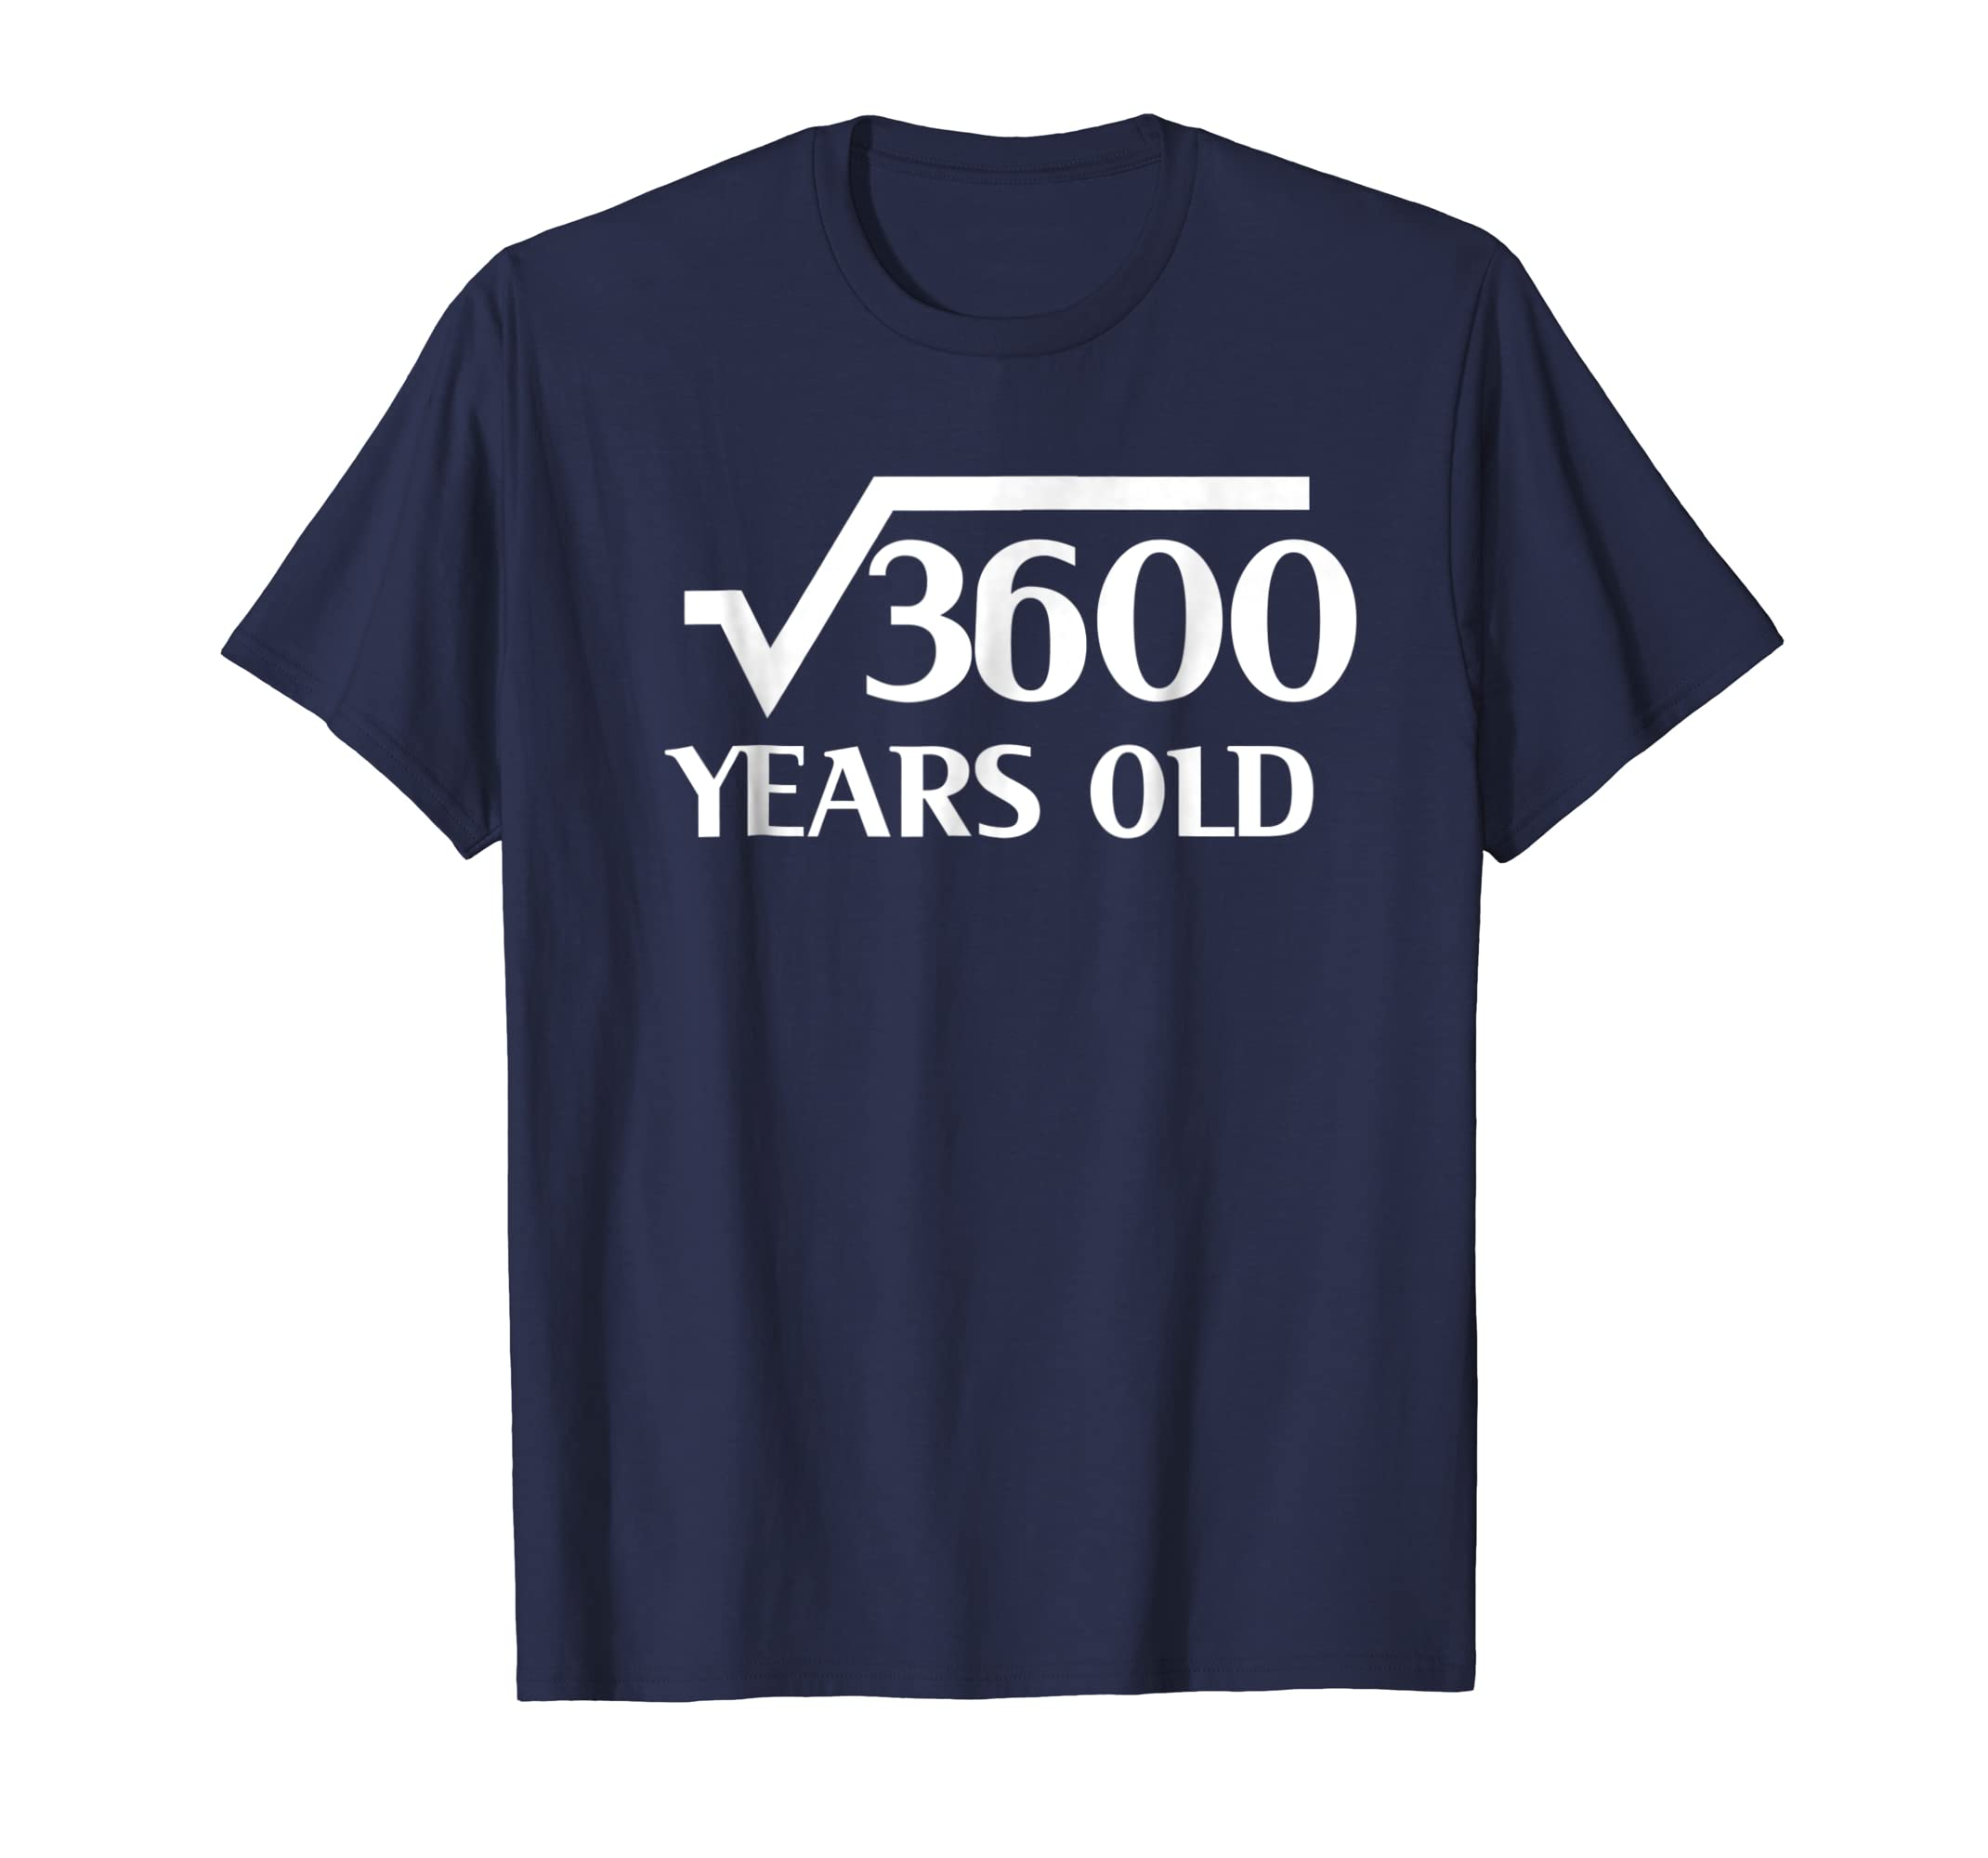 60th Happy Birthday Shirt 60 Years Old Square Root of 3600-ln